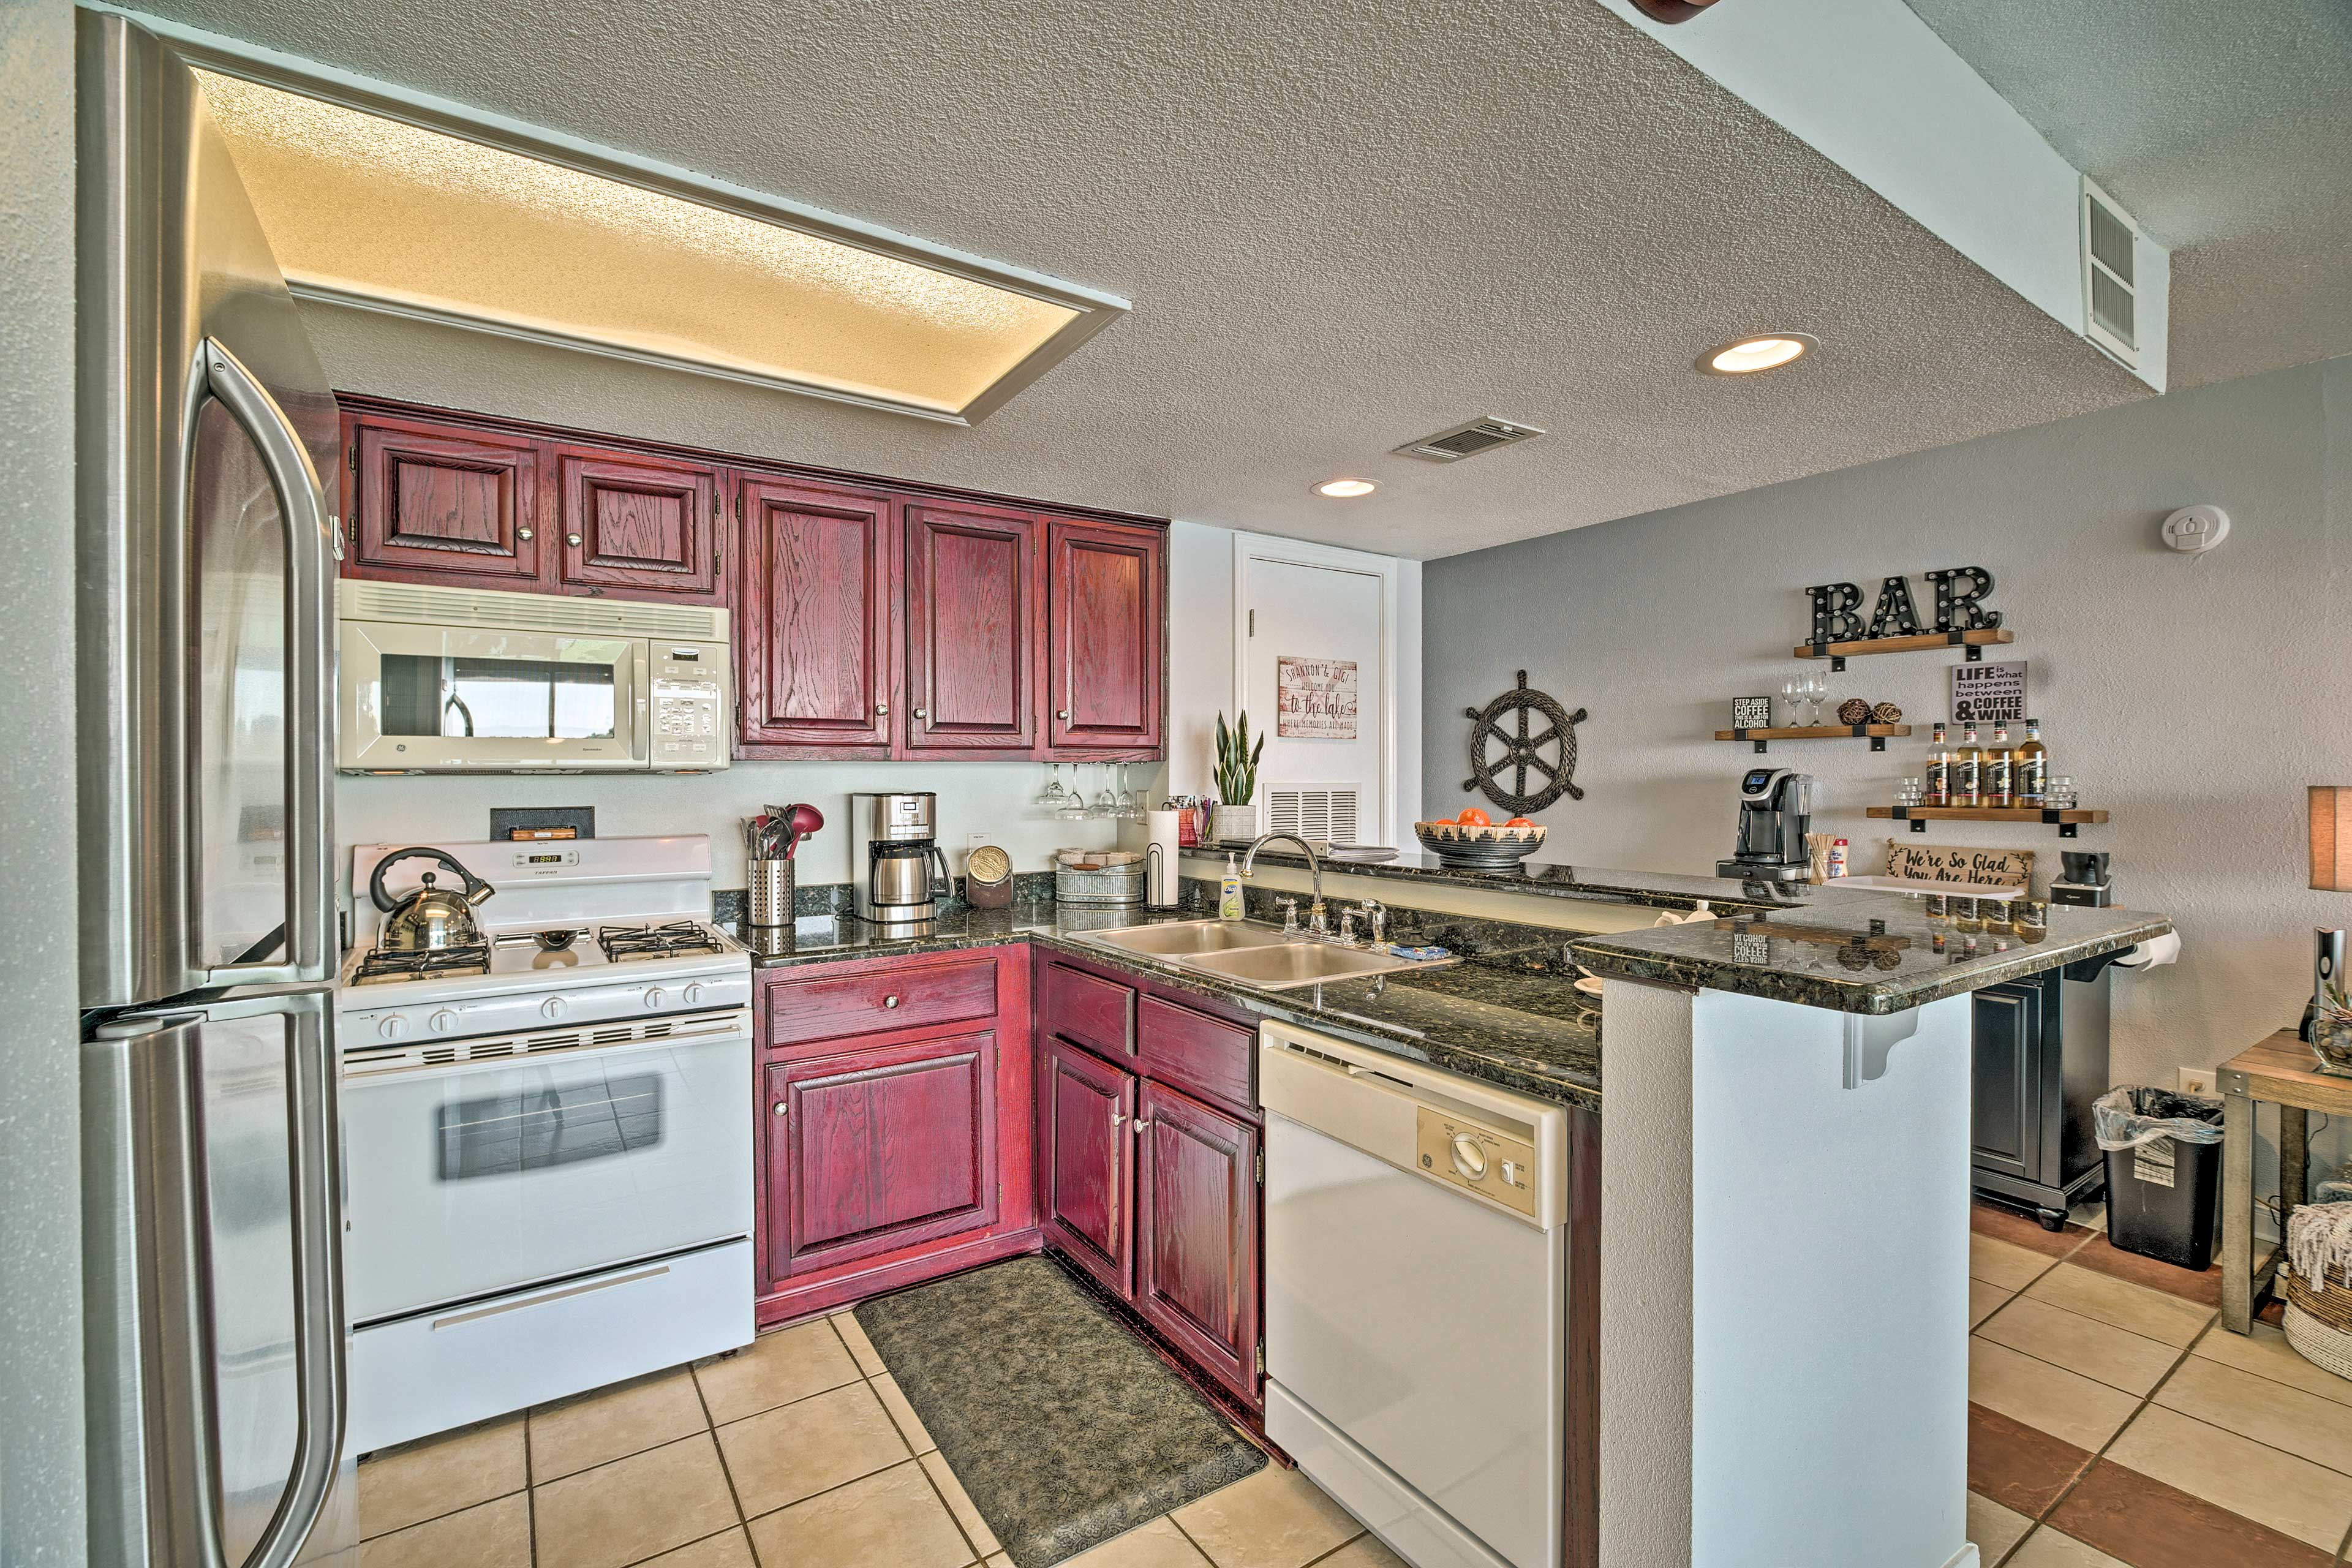 Fully Equipped Kitchen | Drip Coffee Maker | Tea Kettle